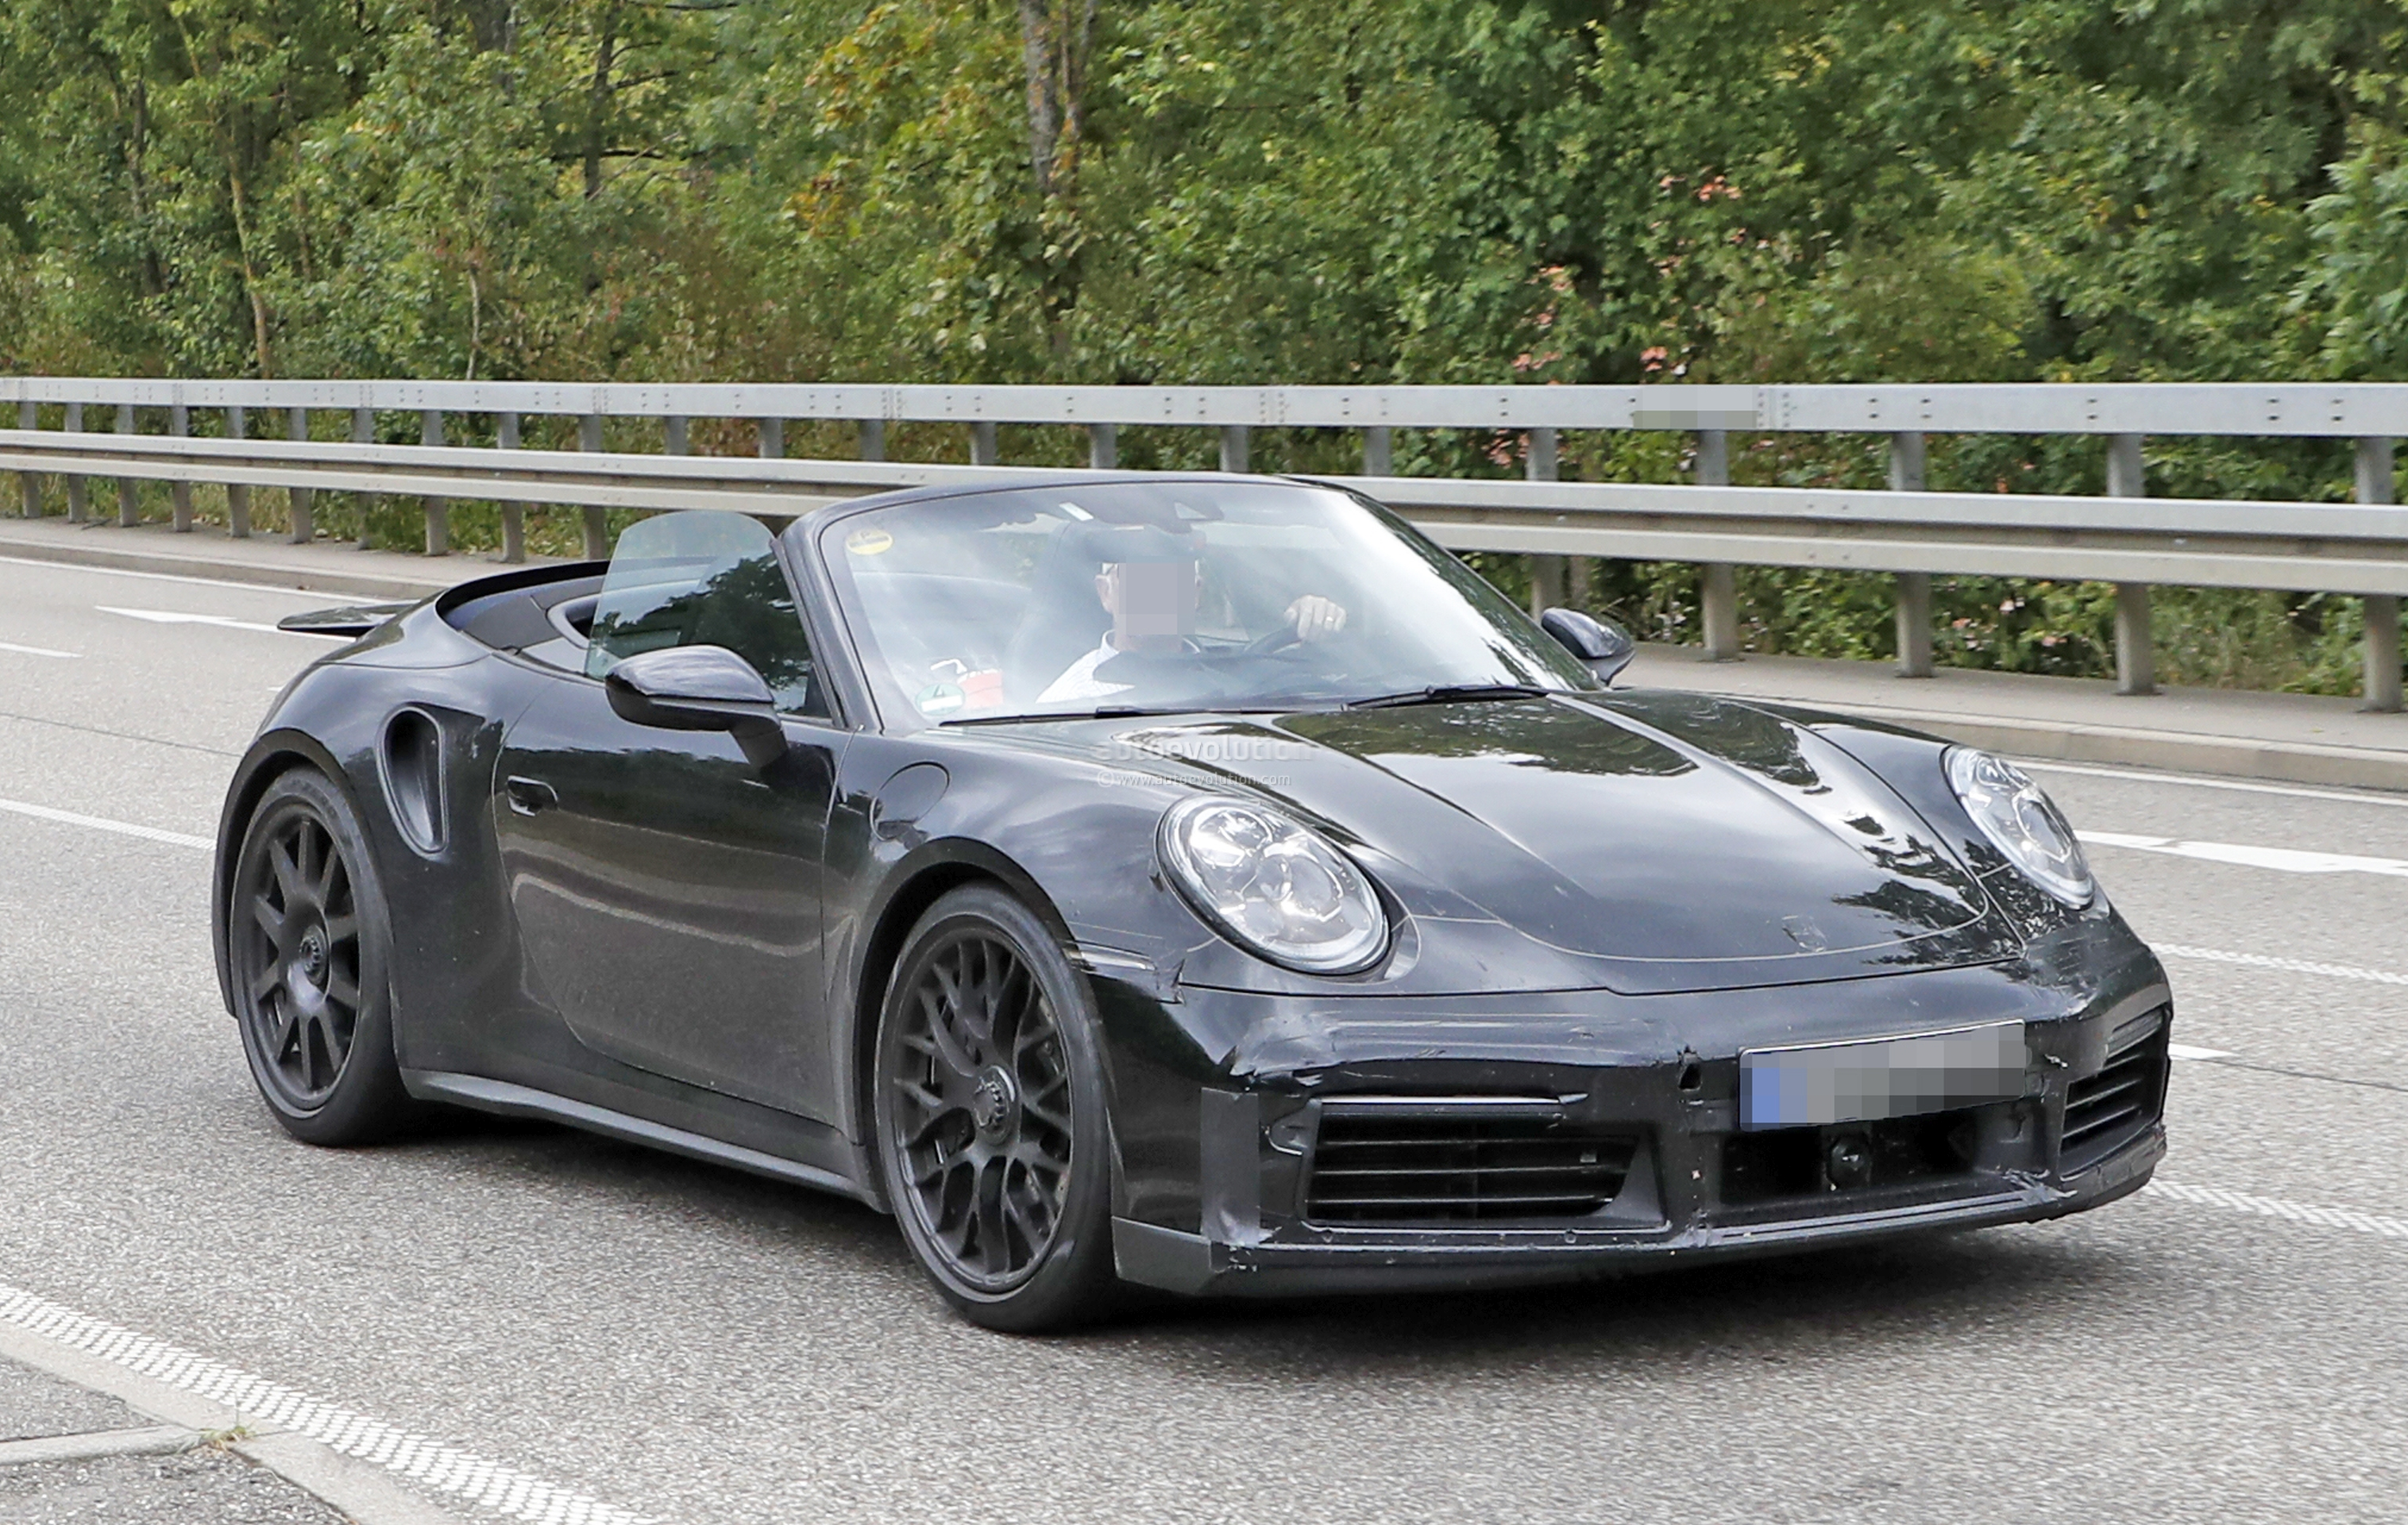 2020 Porsche 911 Turbo Cabriolet Spotted With Top Down Looks